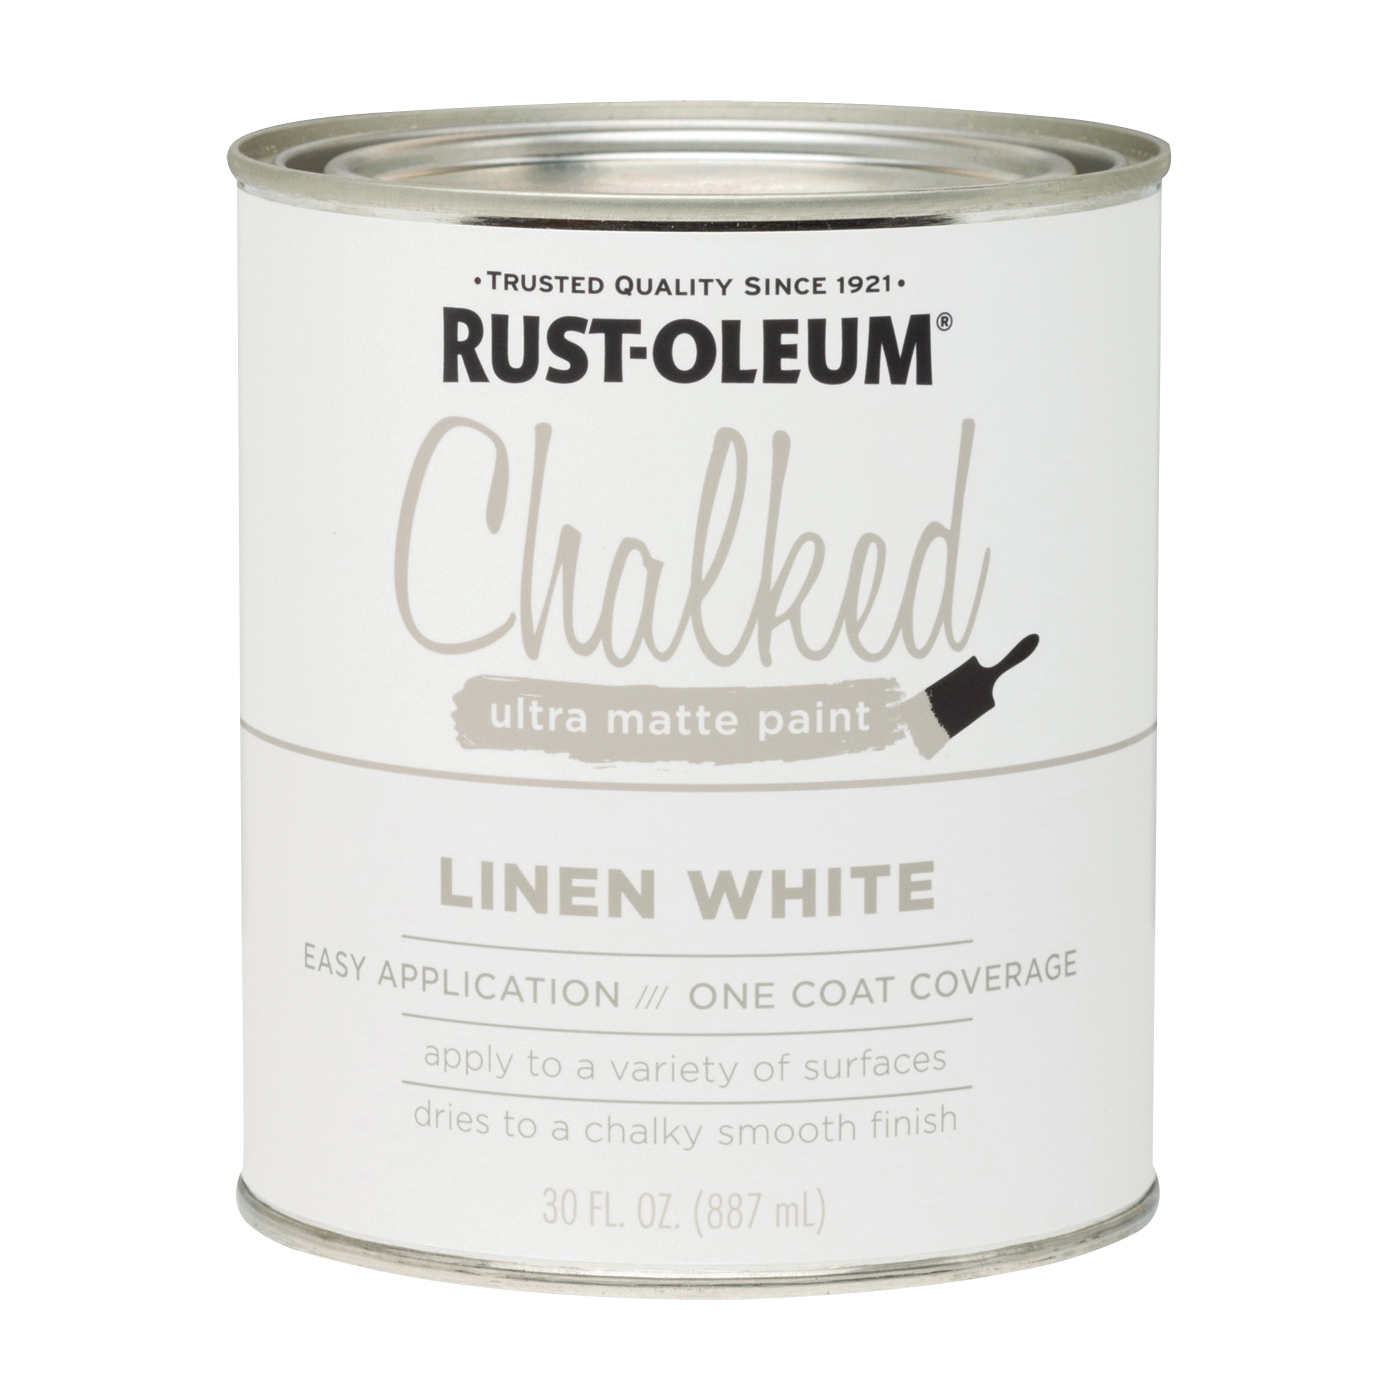 Picture of RUST-OLEUM Chalked 285140 Chalked Paint, Ultra Matte, Linen White, 30 oz, Pint